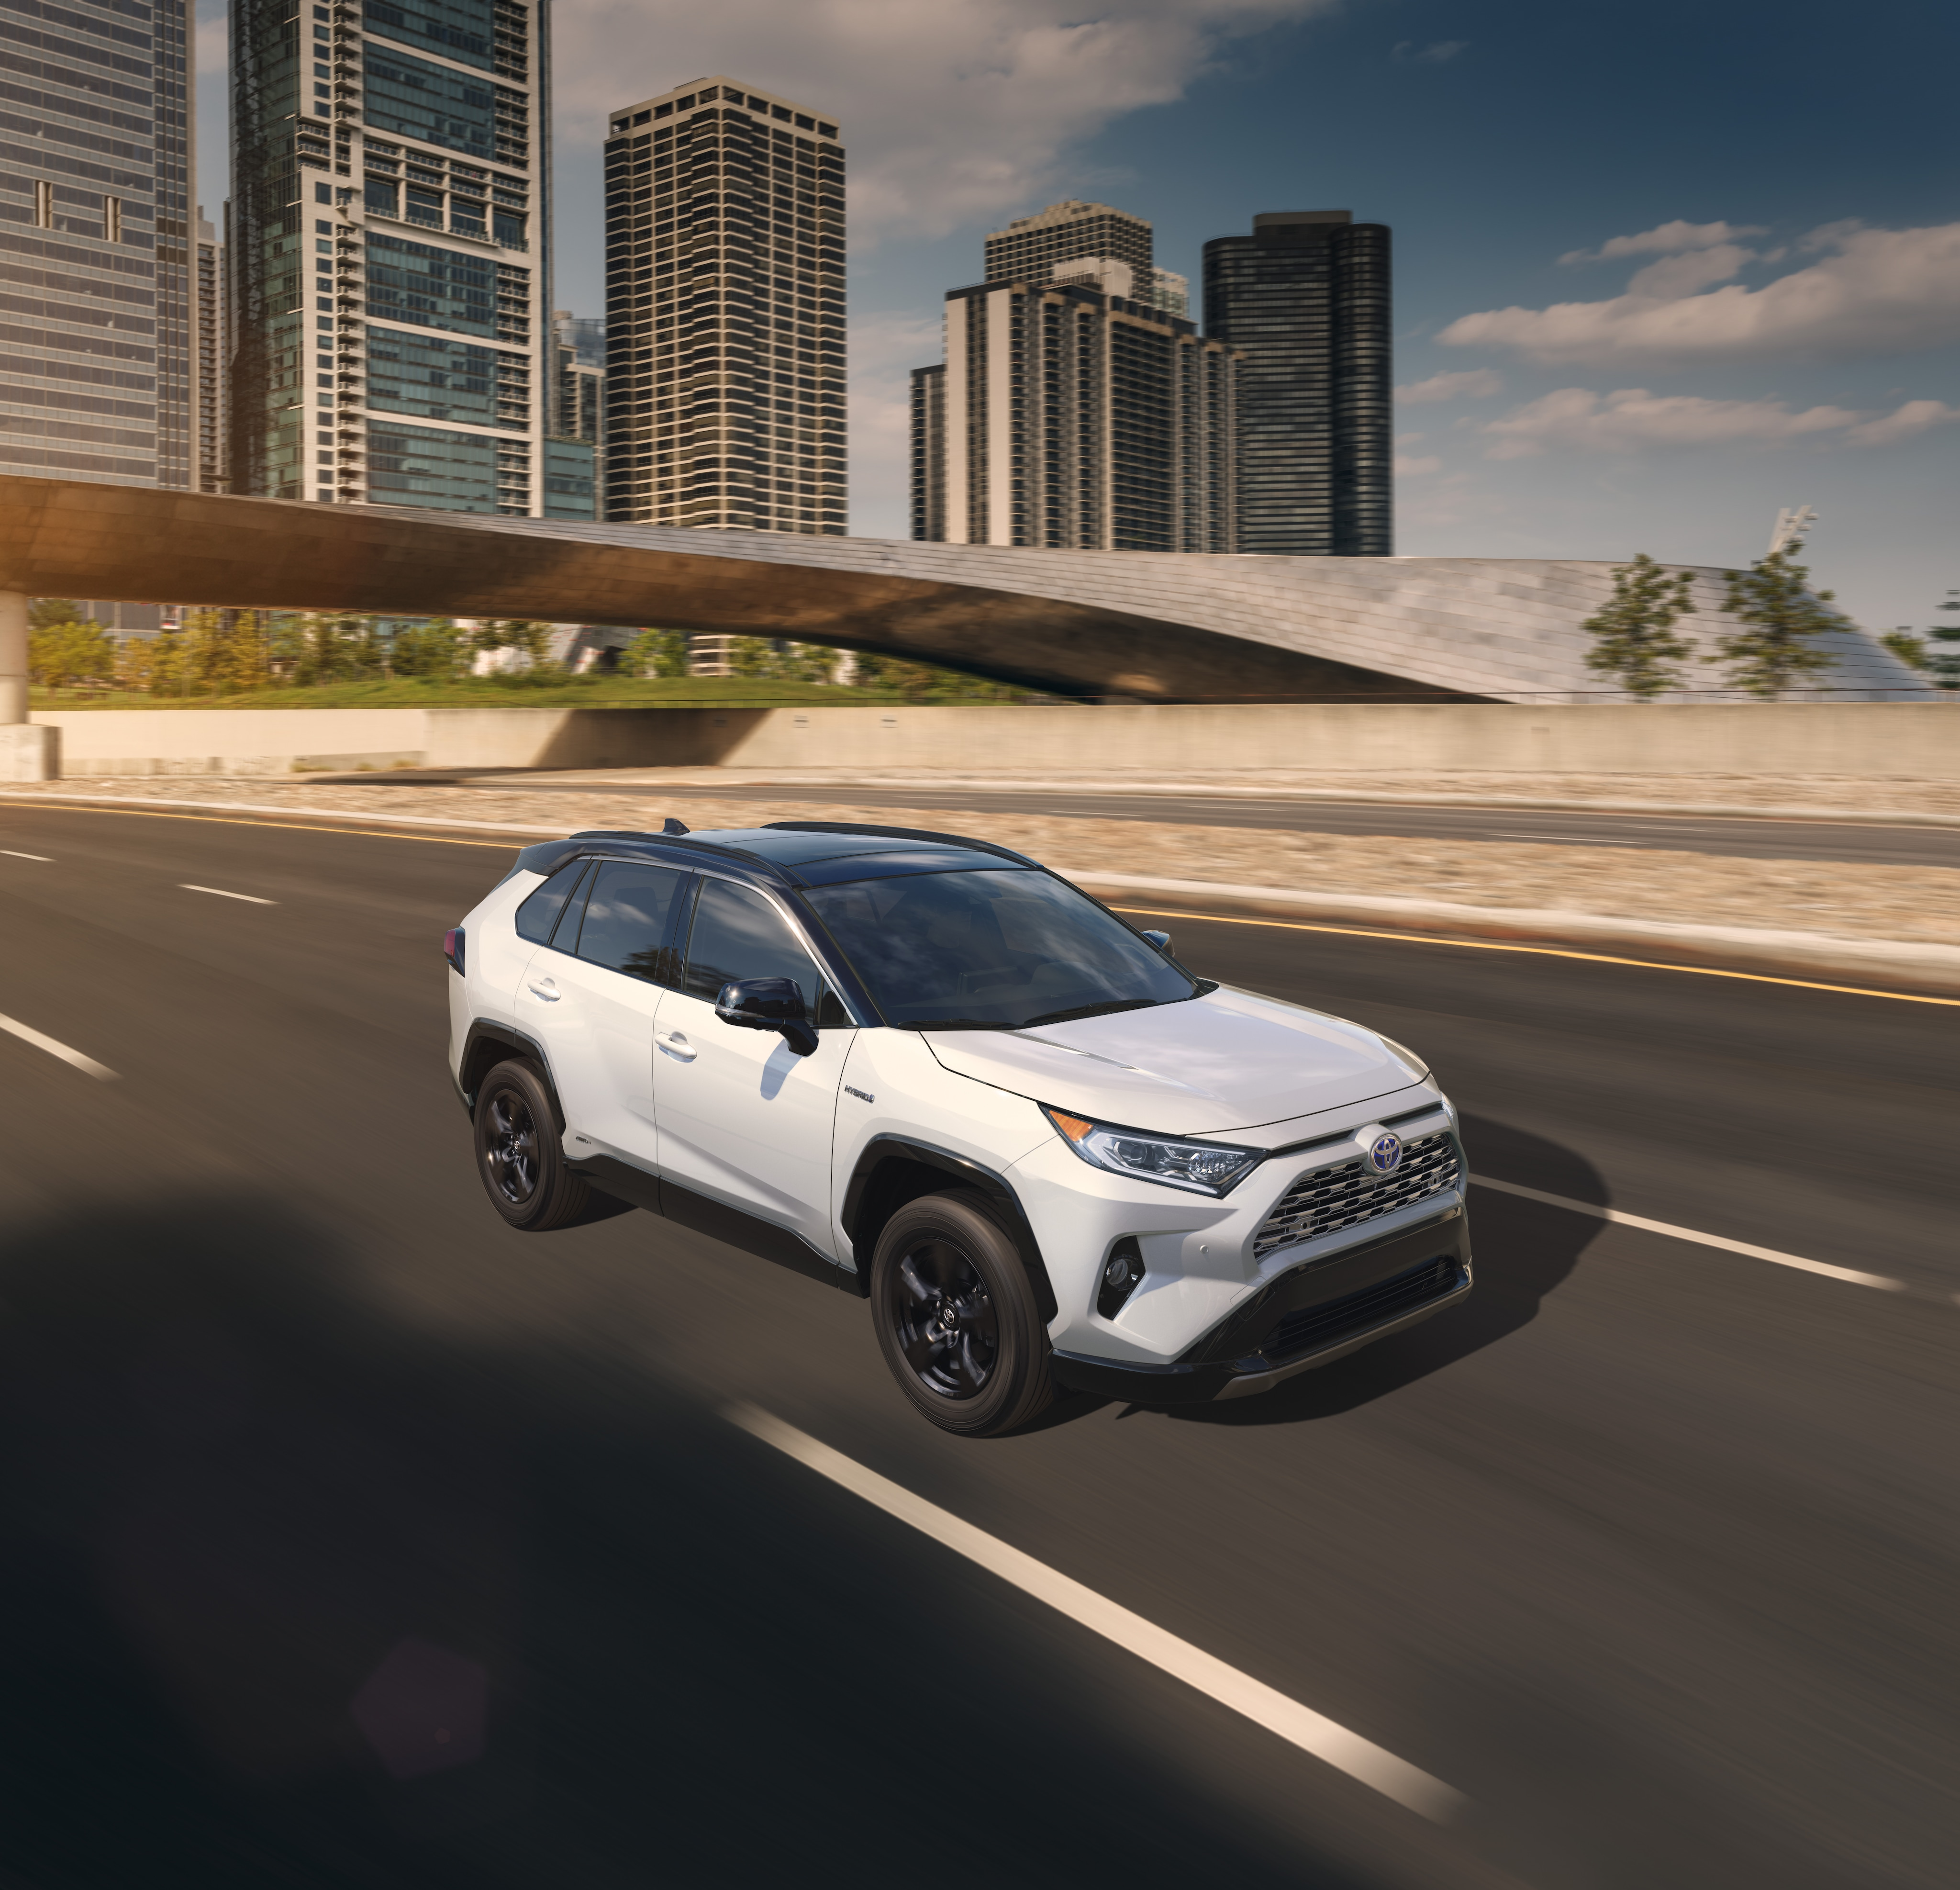 Boch Toyota is a Family Owned Dealership near Boston, MA | 2020 Toyota RAV4 driving on road with city visible in background